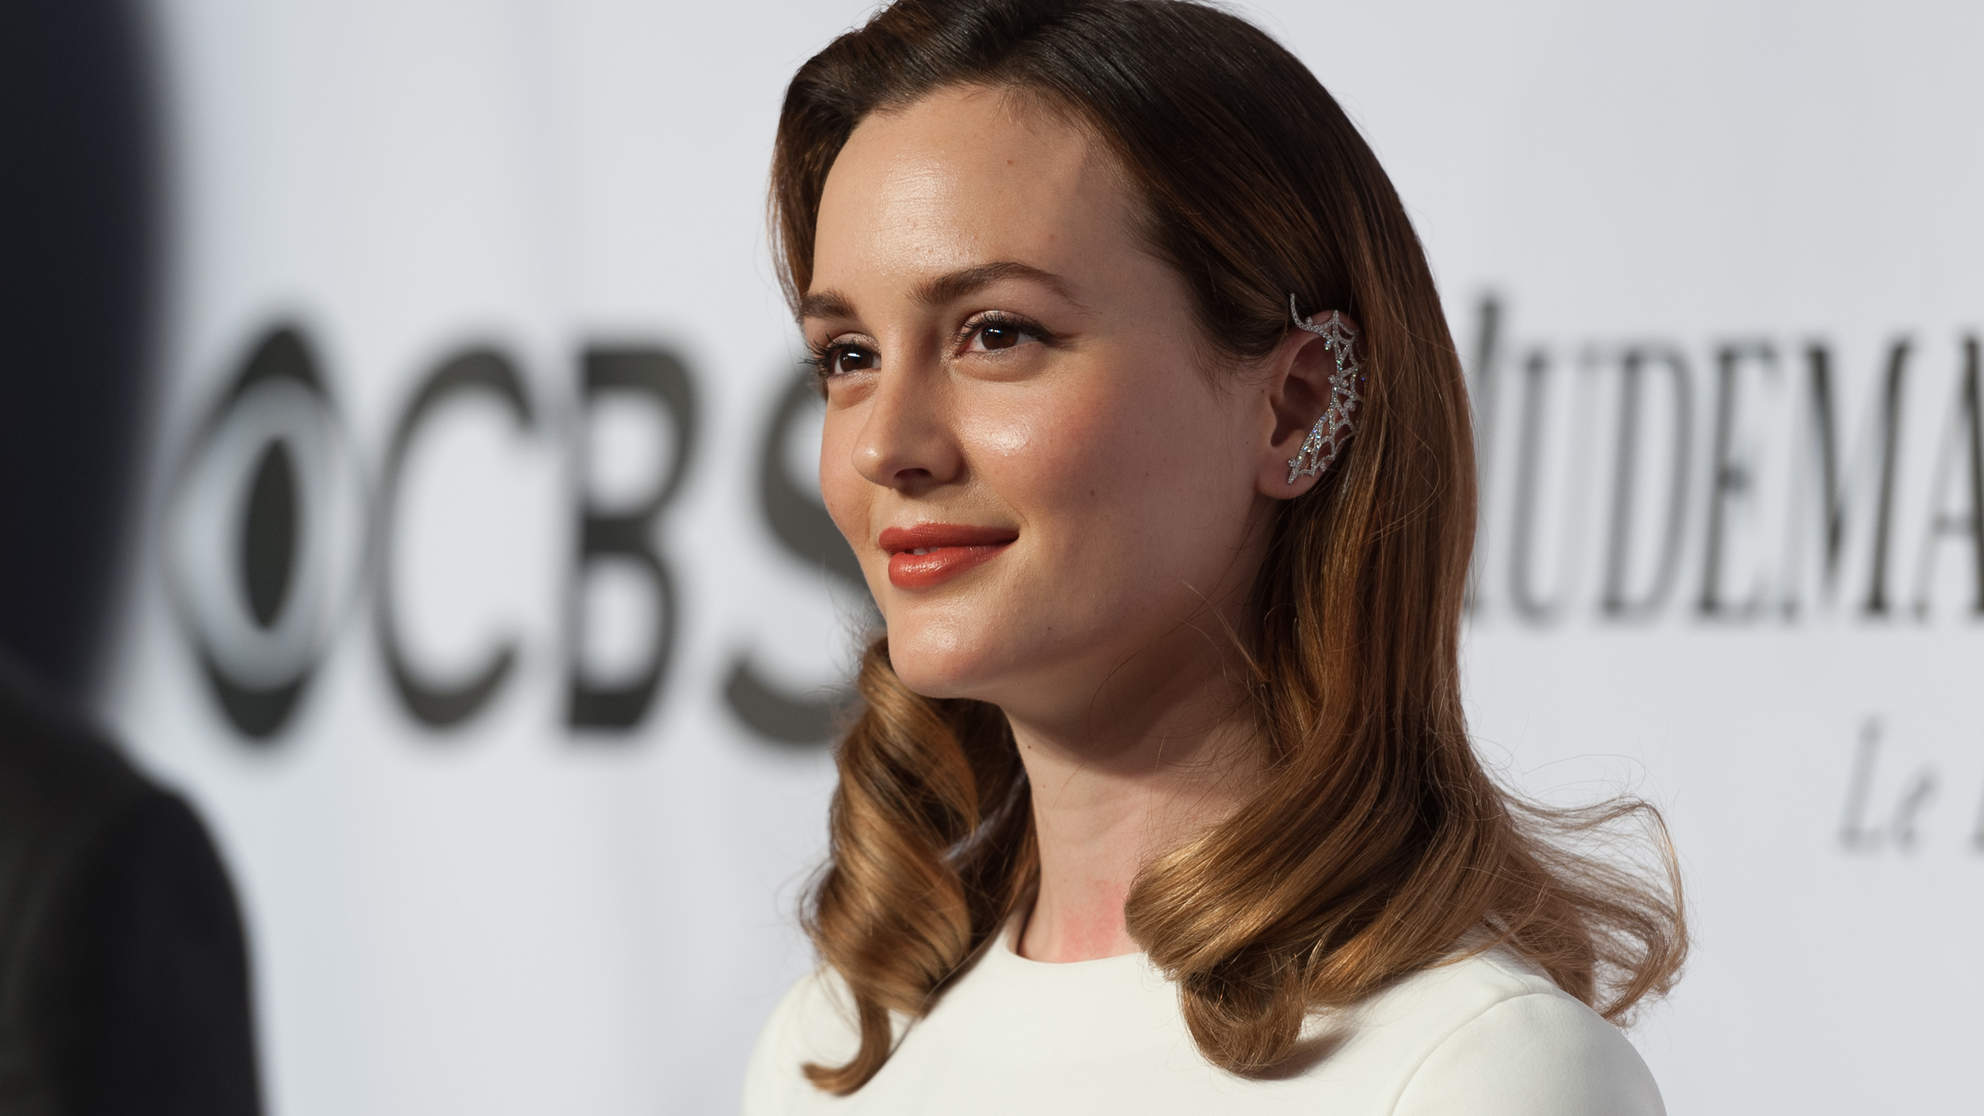 Leighton Meester Just Debuted Platinum Blonde Hair, and Blair Waldorf Has Left the Building